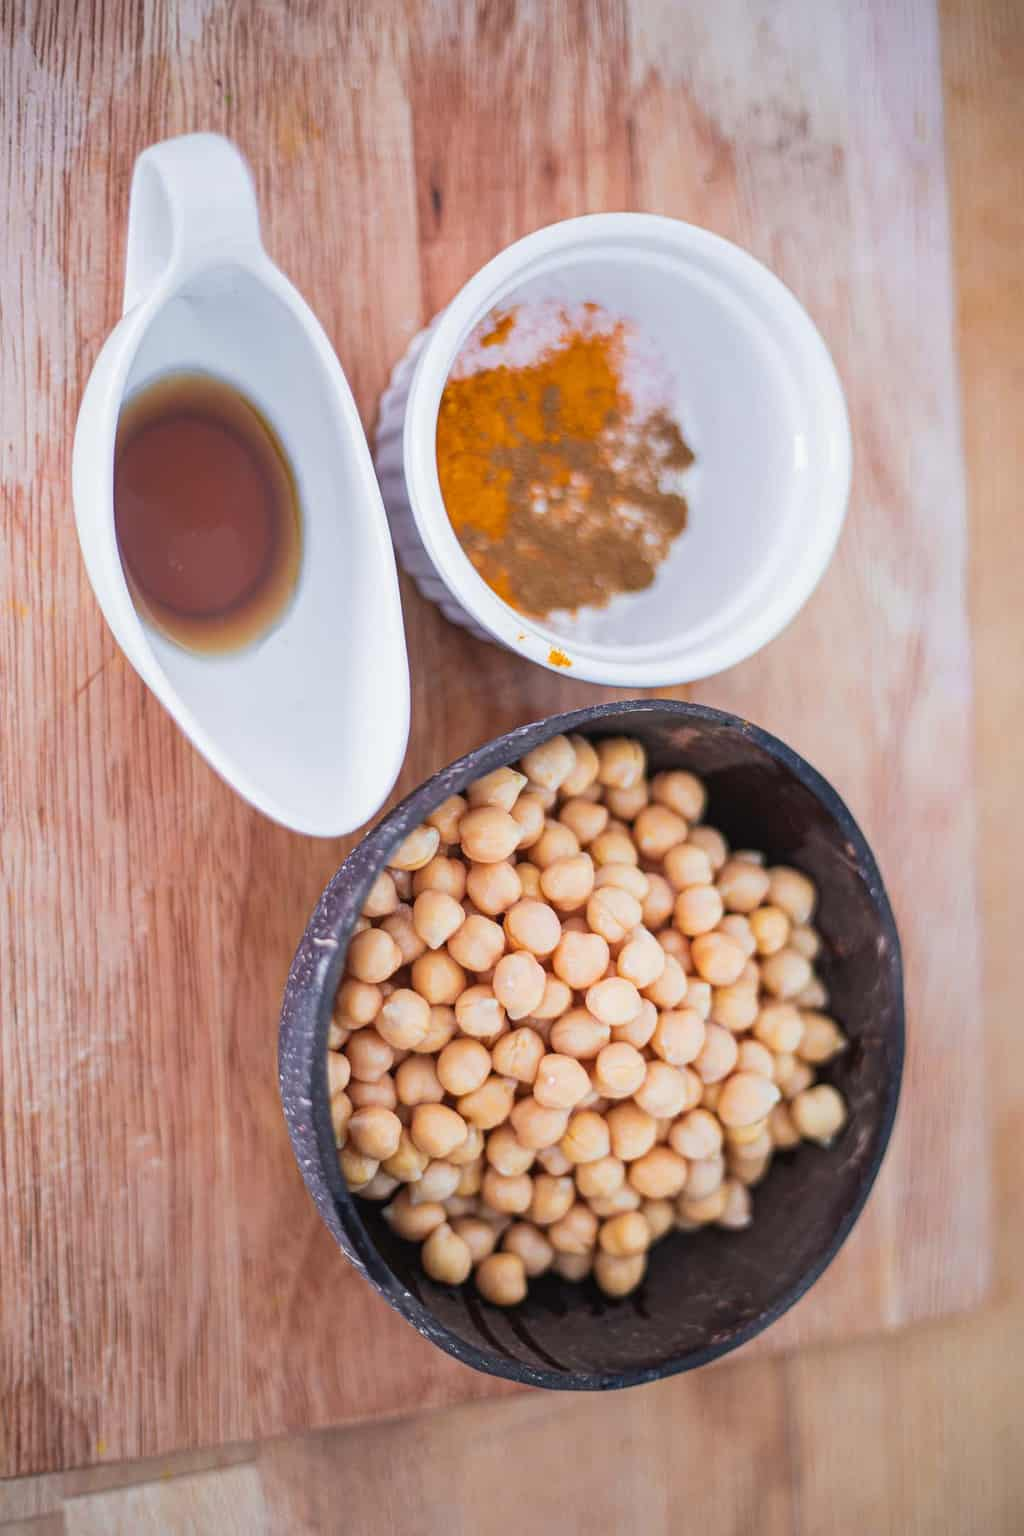 Ingredients for maple chickpeas